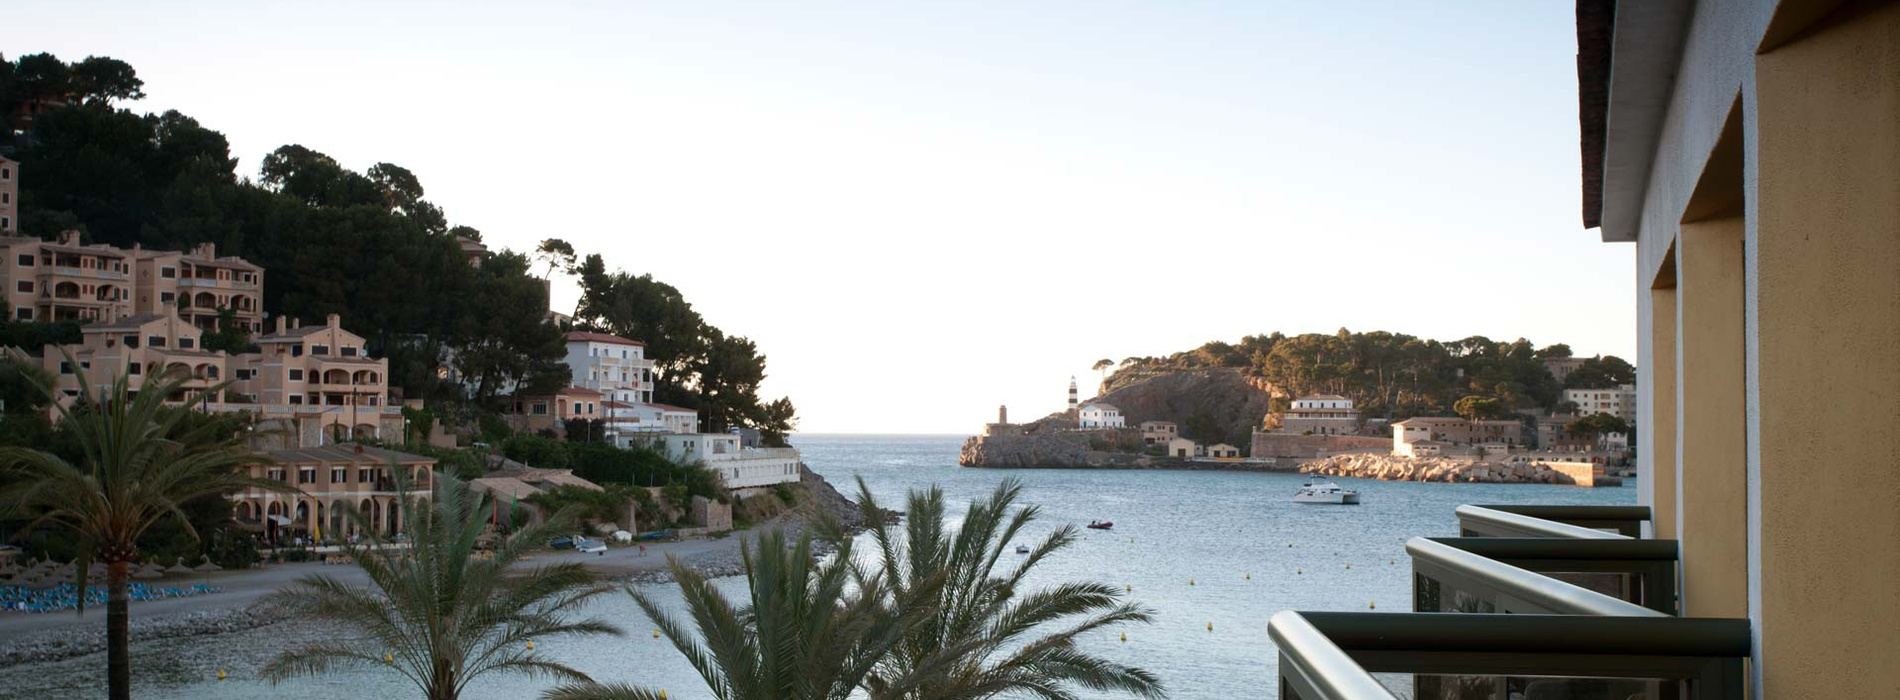 Excellently-located beachside hotel in Soller